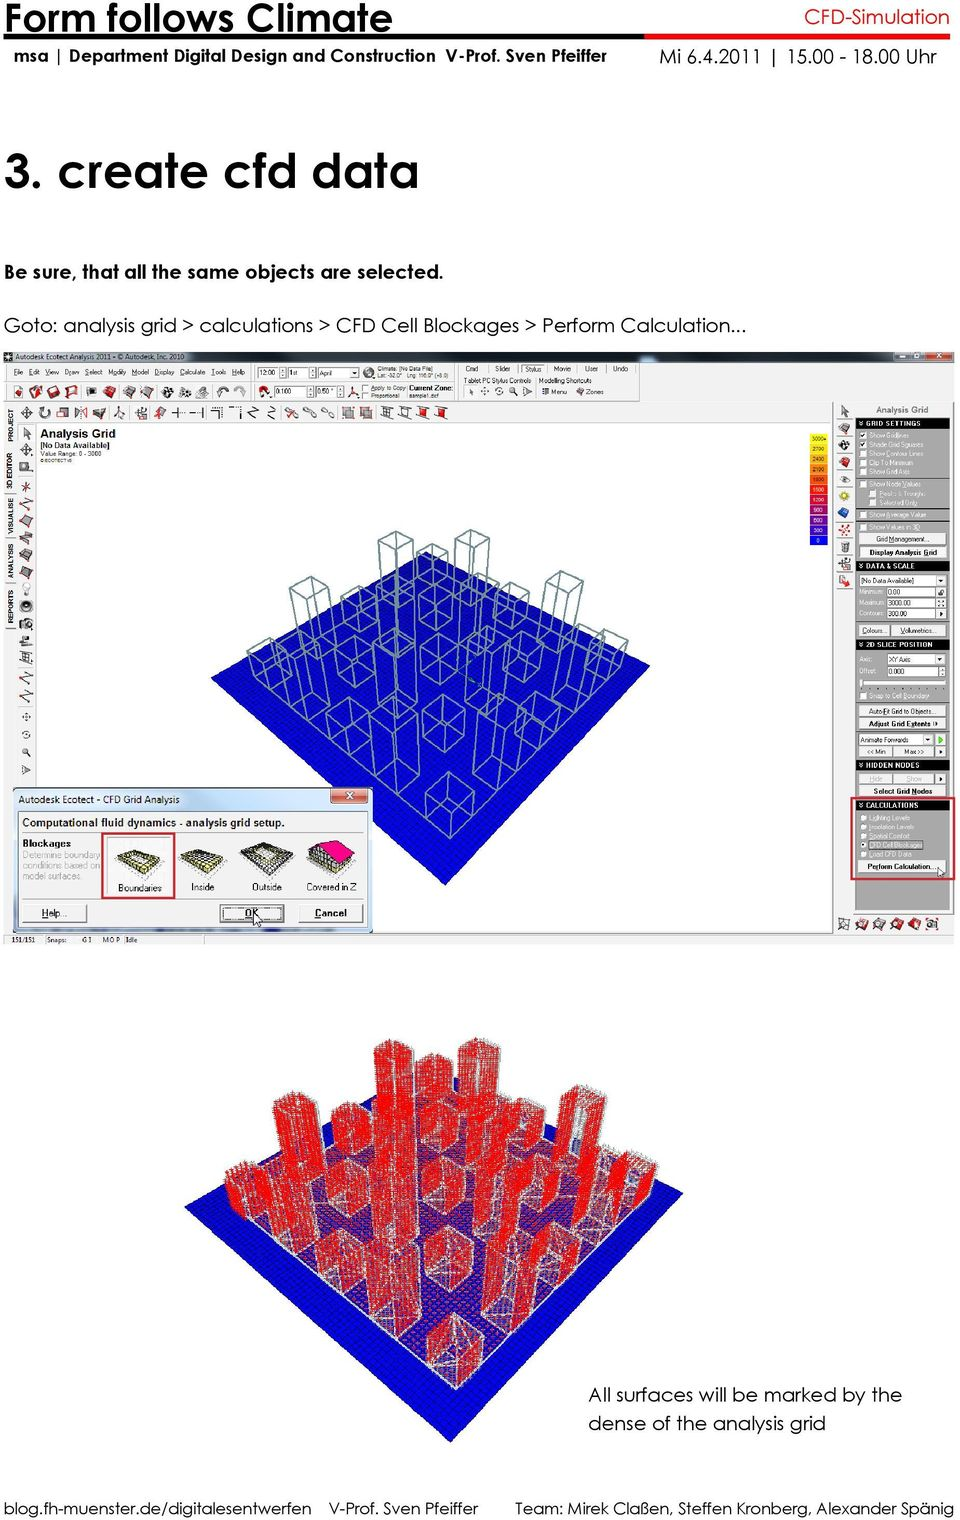 Goto: analysis grid > calculations > CFD Cell